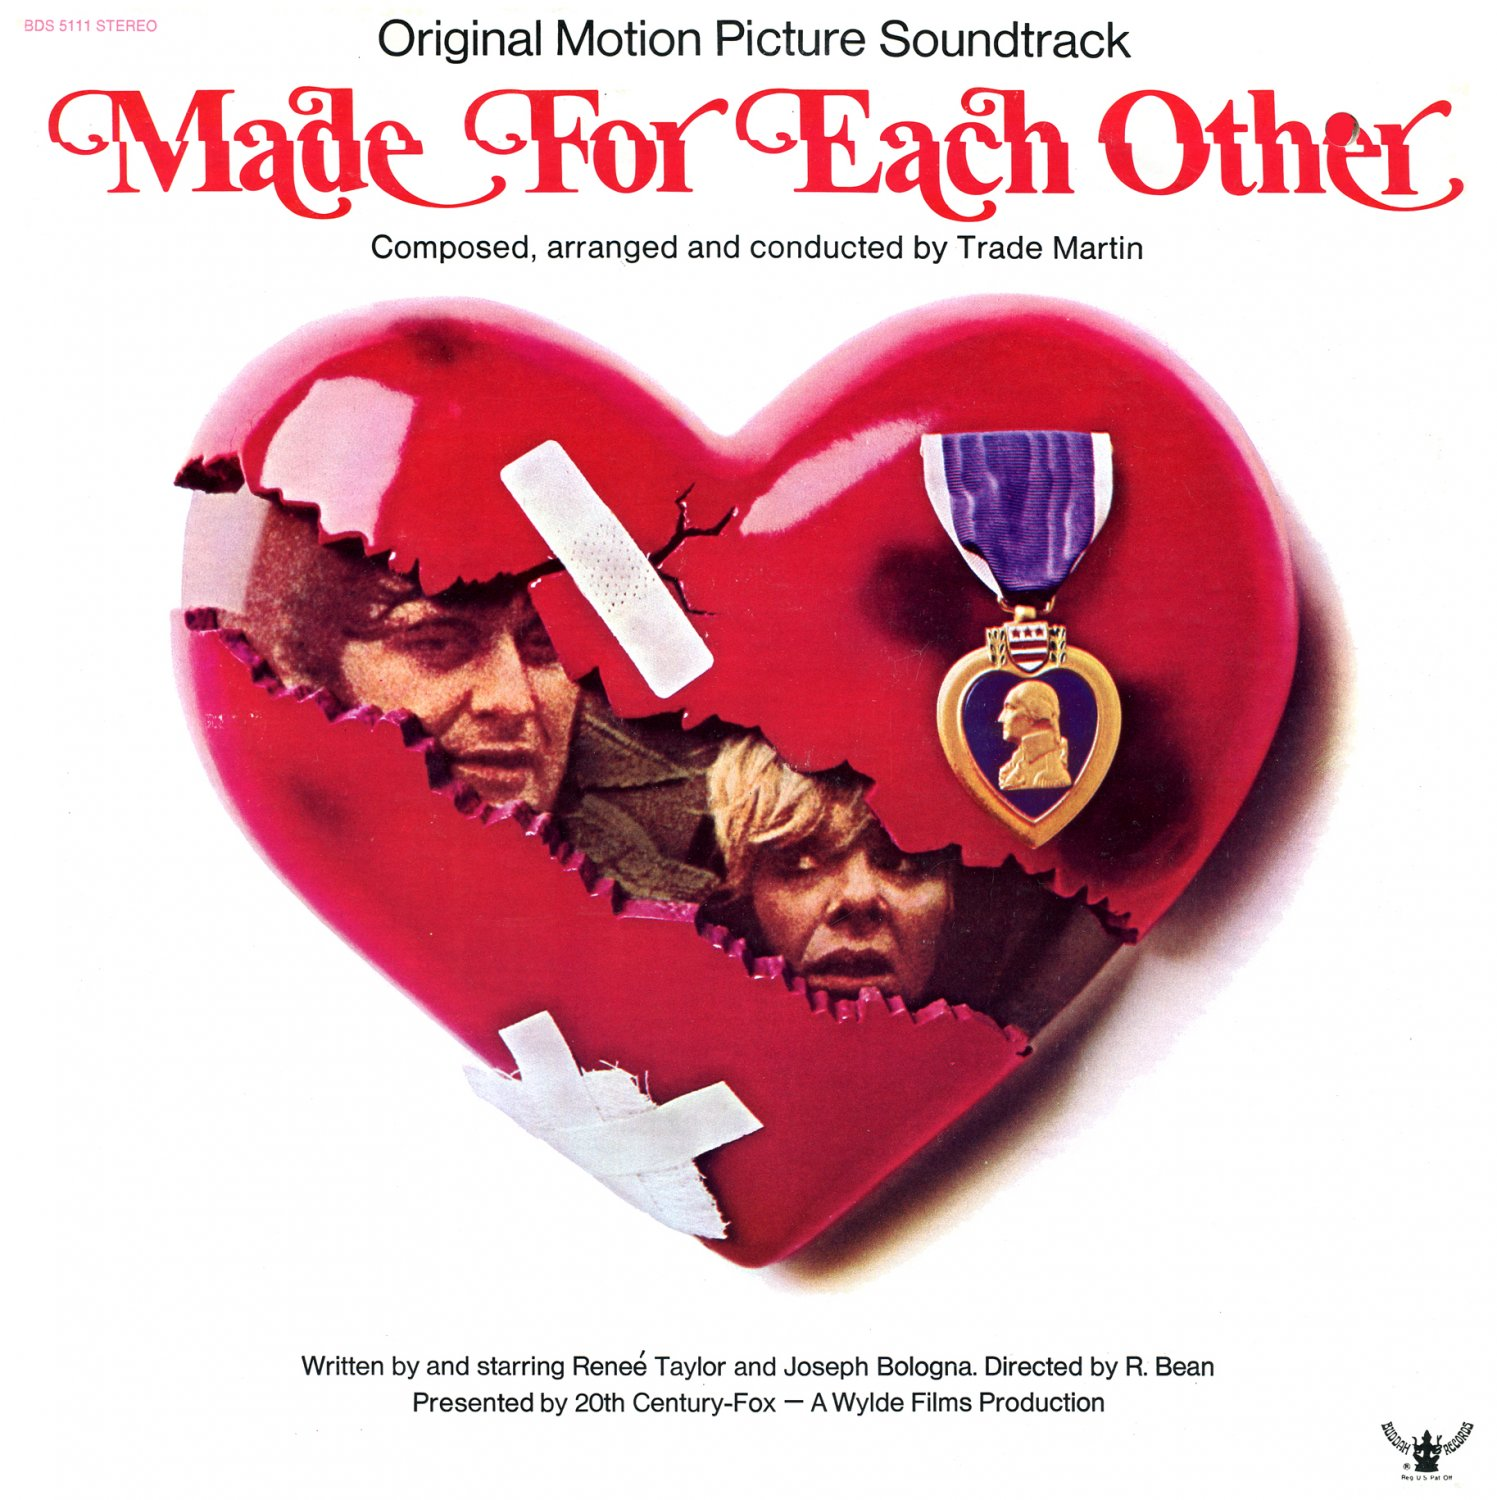 Made For Each Other - Original Soundtrack, Trade Martin OST LP/CD